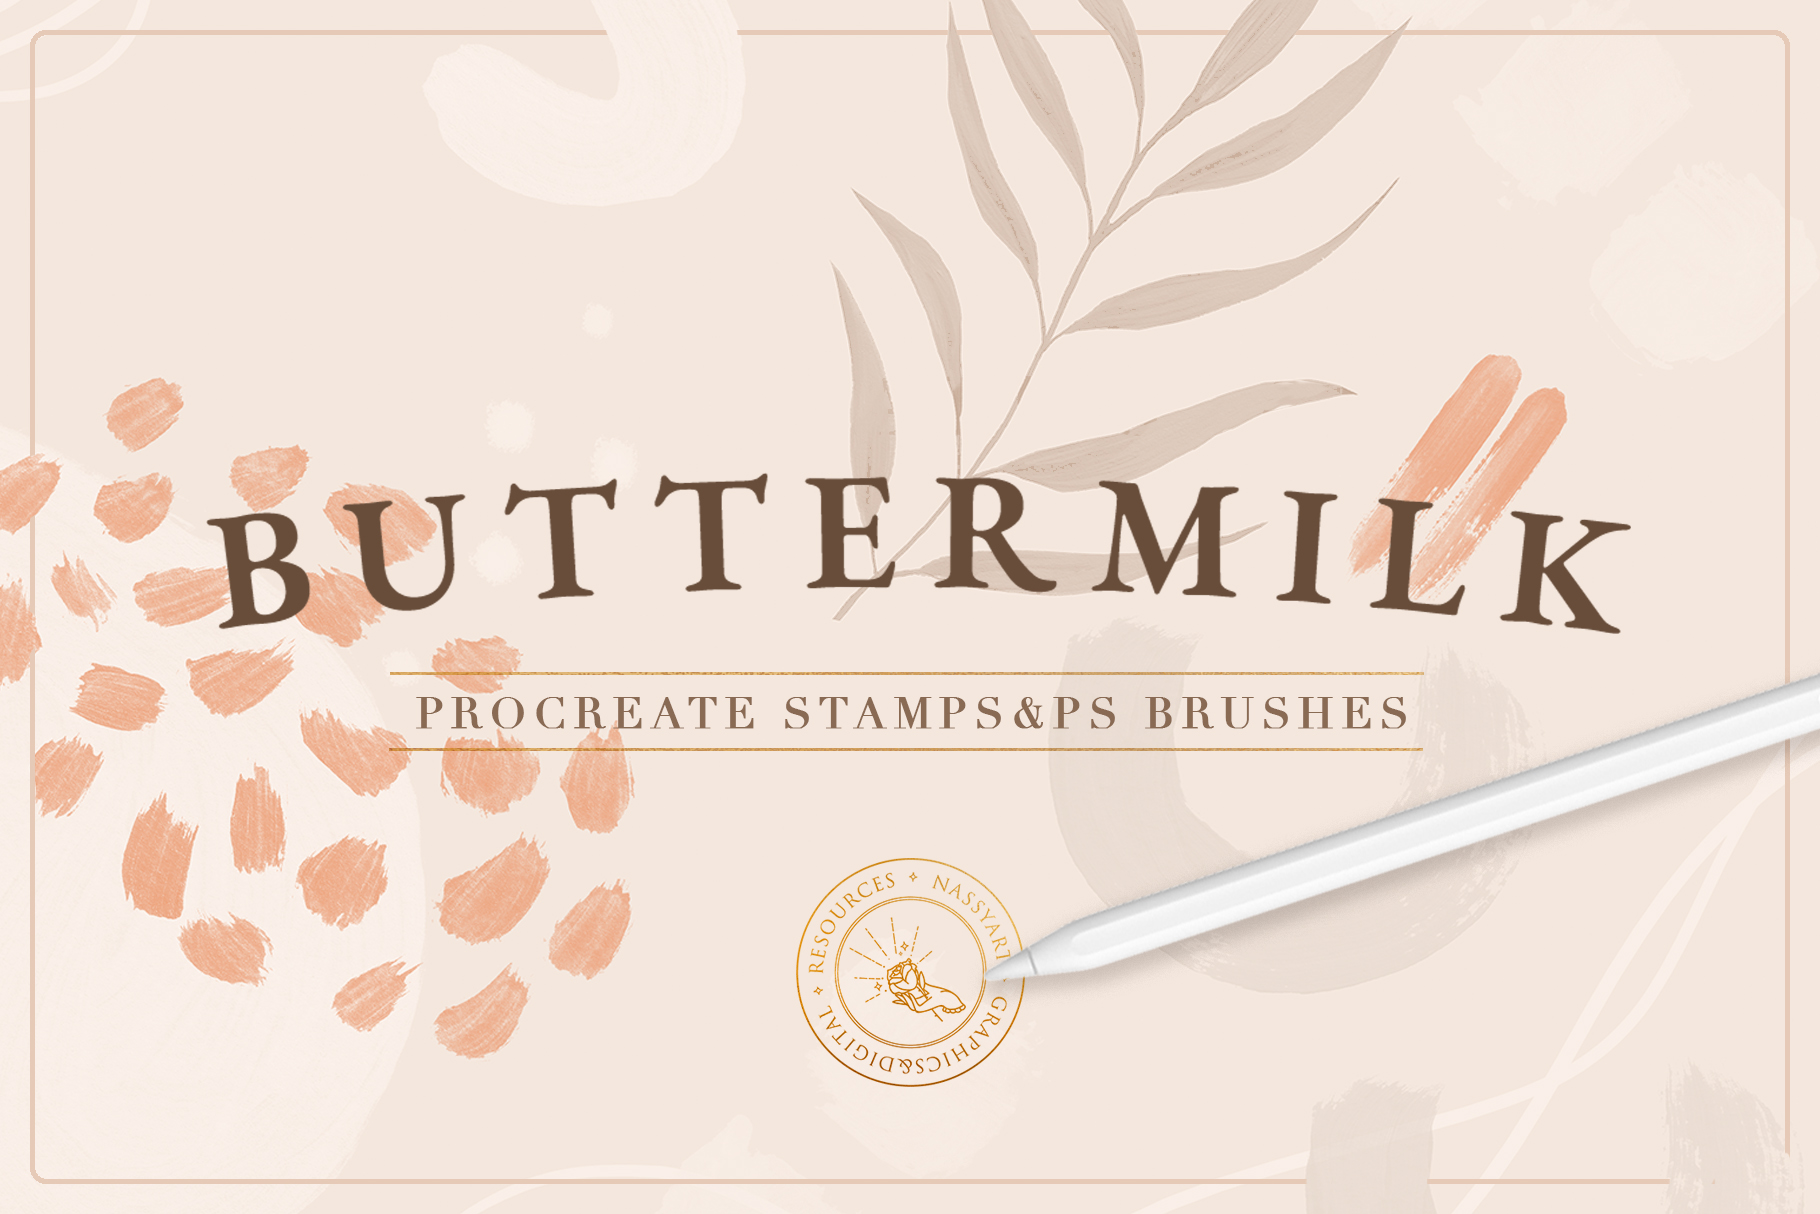 Buttermilk Procreate Stamps & Photoshop Brushes